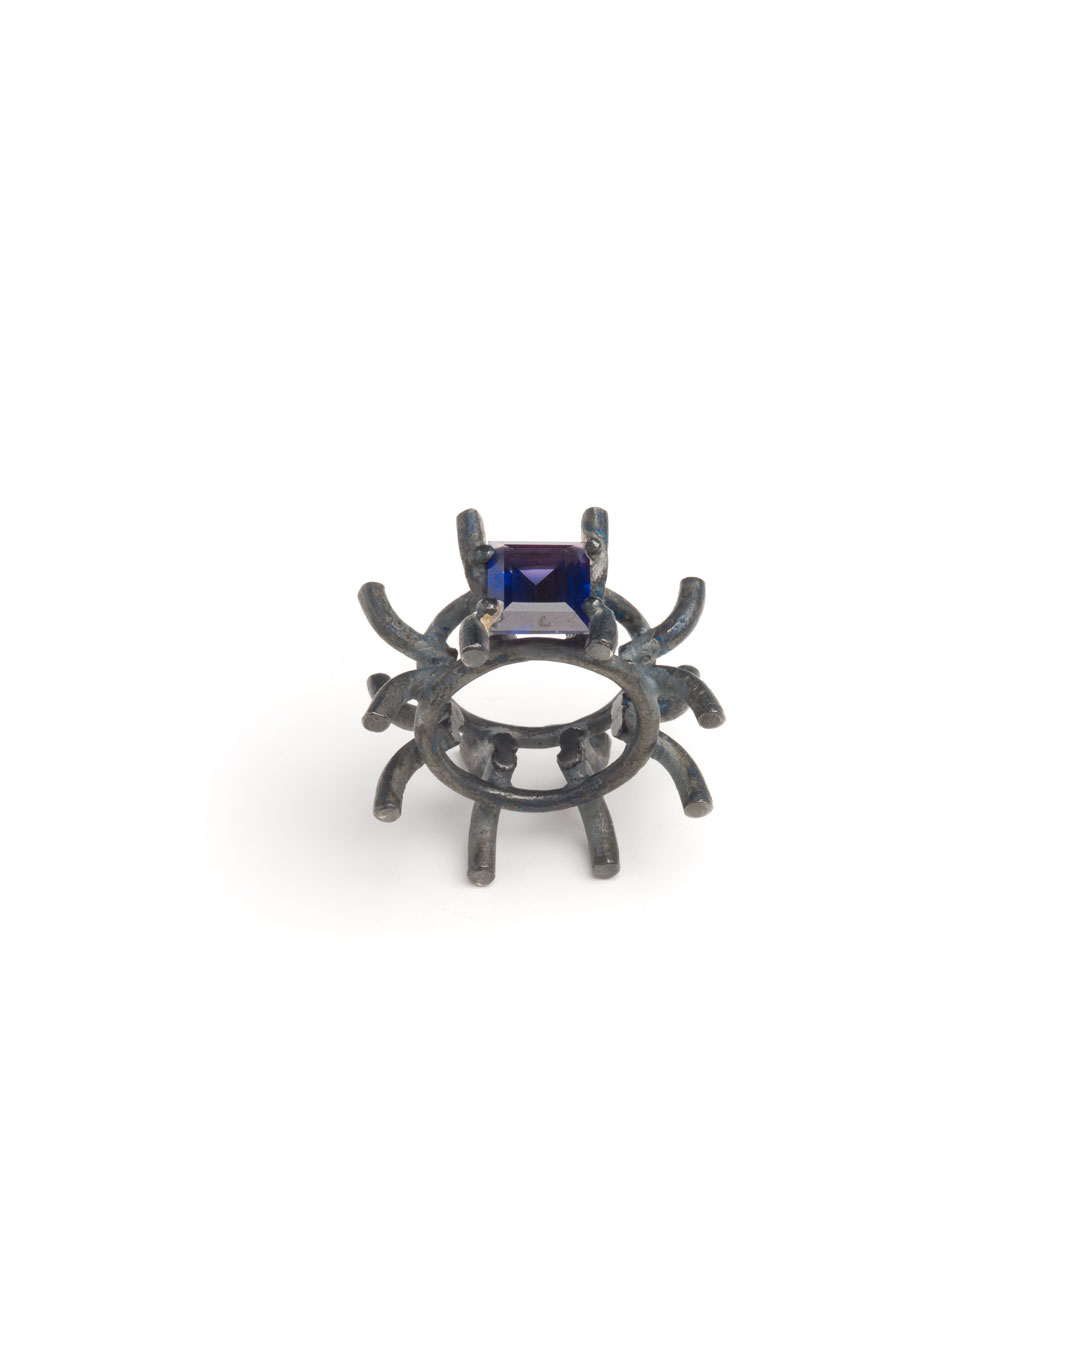 Winfried Krüger, untitled, 1996, ring; oxidised silver, glass, ø 40 mm, €970